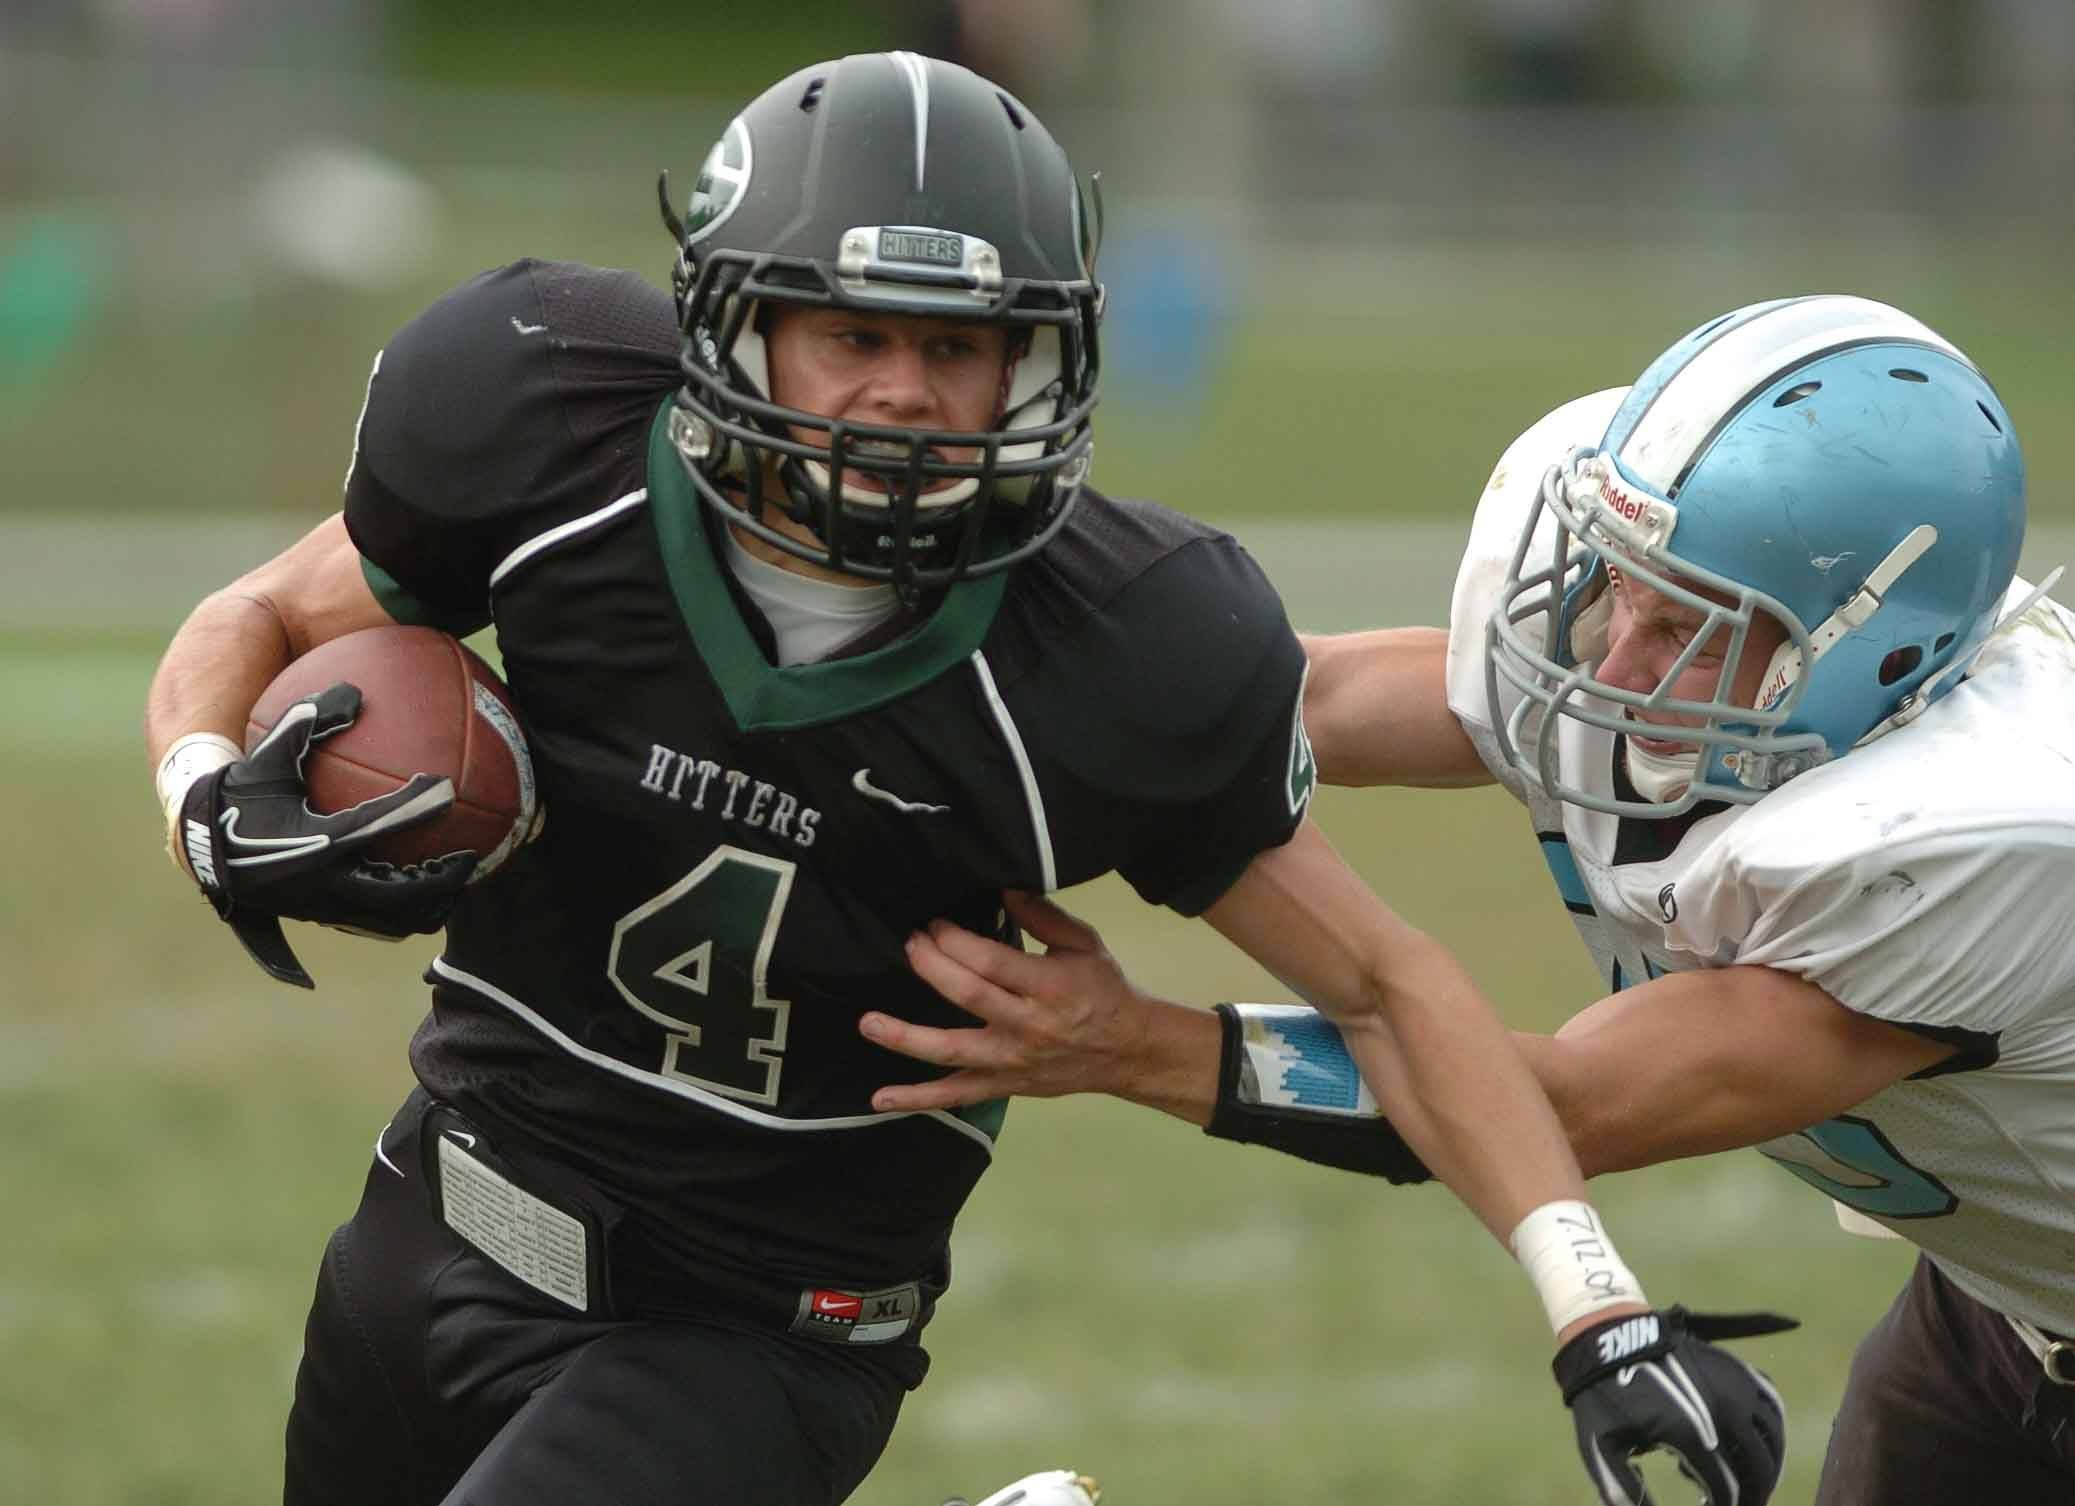 Matthew Marston of Glen Ellyn on the run during the Willowbrook at Glenbard West Football game Saturday.